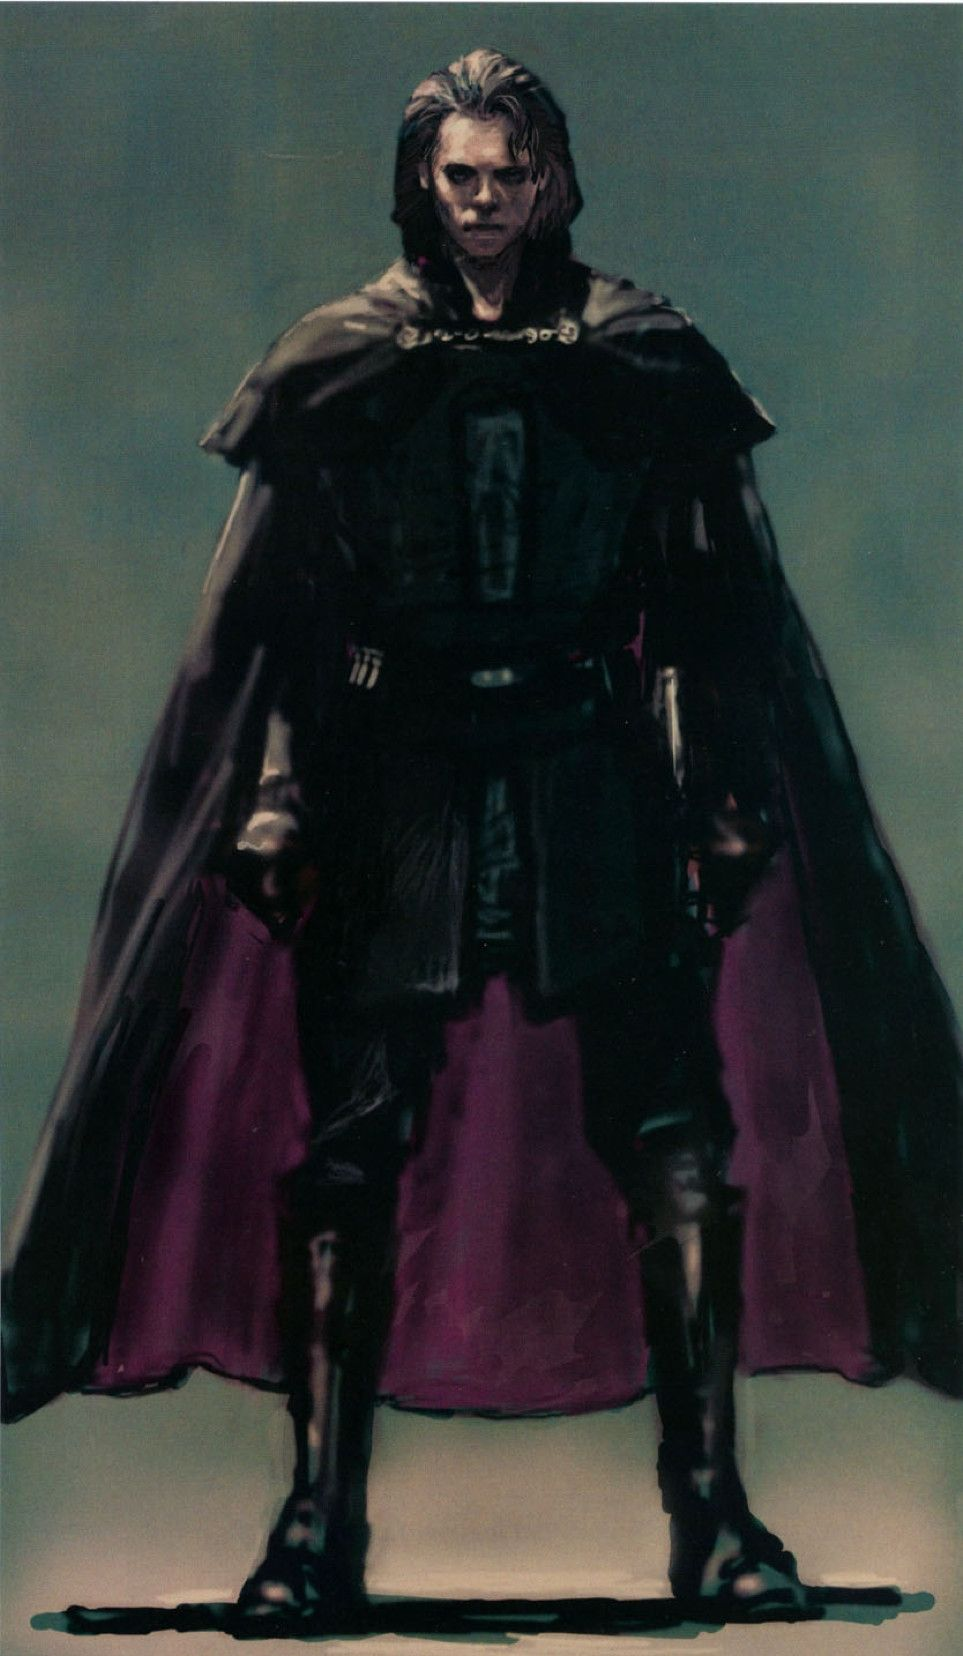 Keblava Concept Art Of Anakin Skywalker In Episode Iii Revenge Of The Sith We Wanted T Star Wars Images Star Wars Characters Pictures Star Wars Concept Art